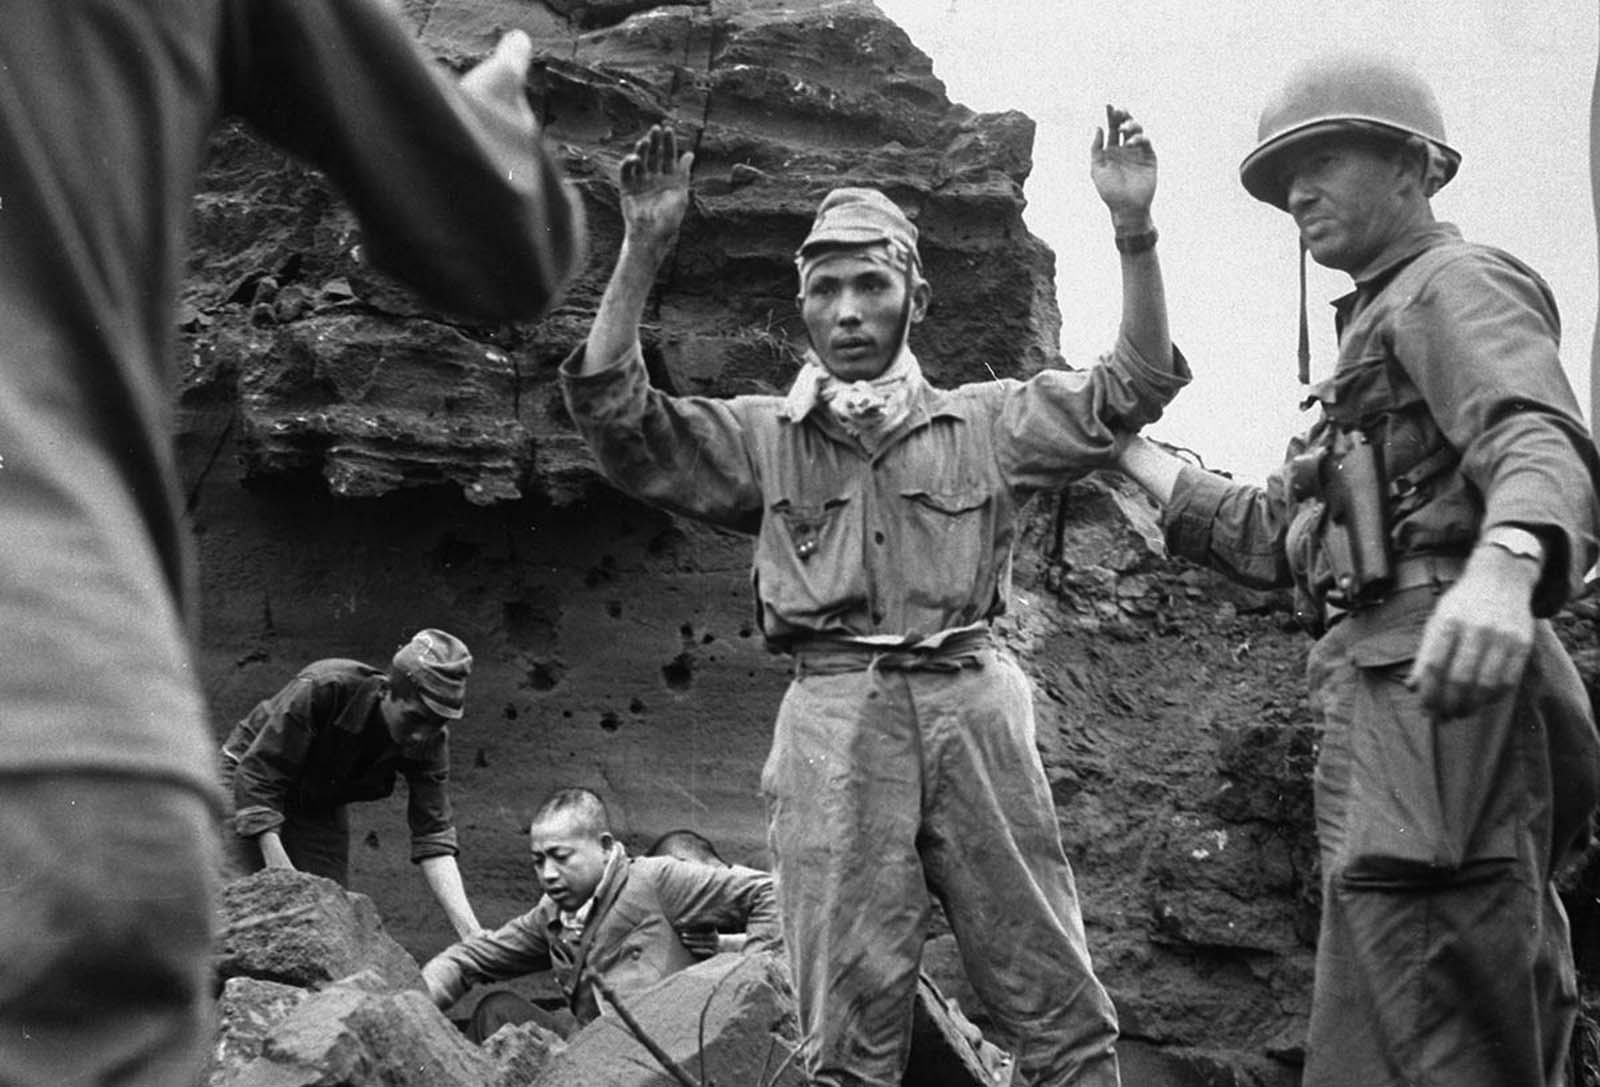 With his hands in the air, the first of 20 Japanese emerges from a cave on Iwo Jima, on April 5, 1945. The group had been hiding for several days.